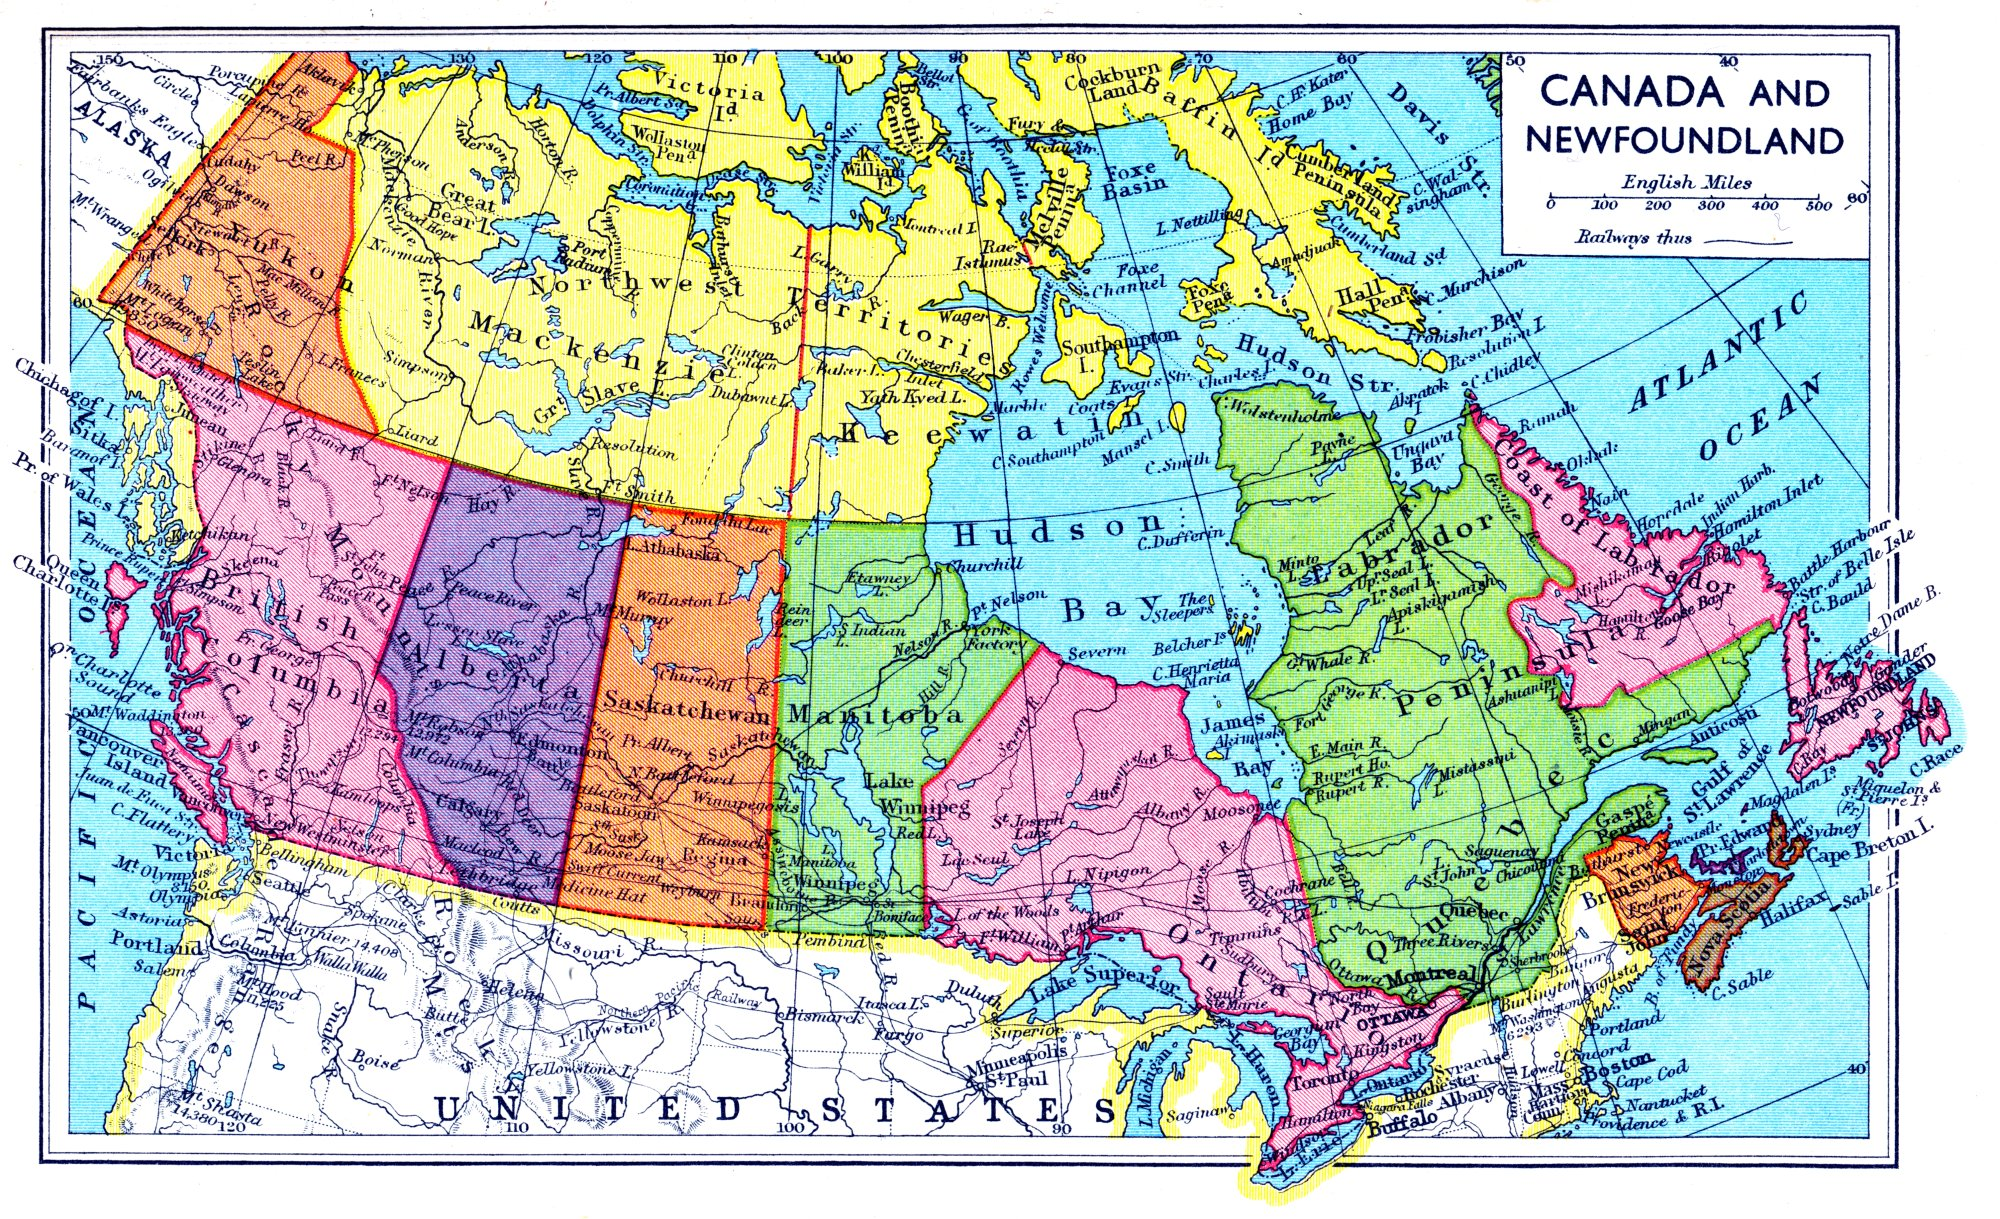 Canadian open data and free geospatial data canadian gis geomatics gumiabroncs Choice Image